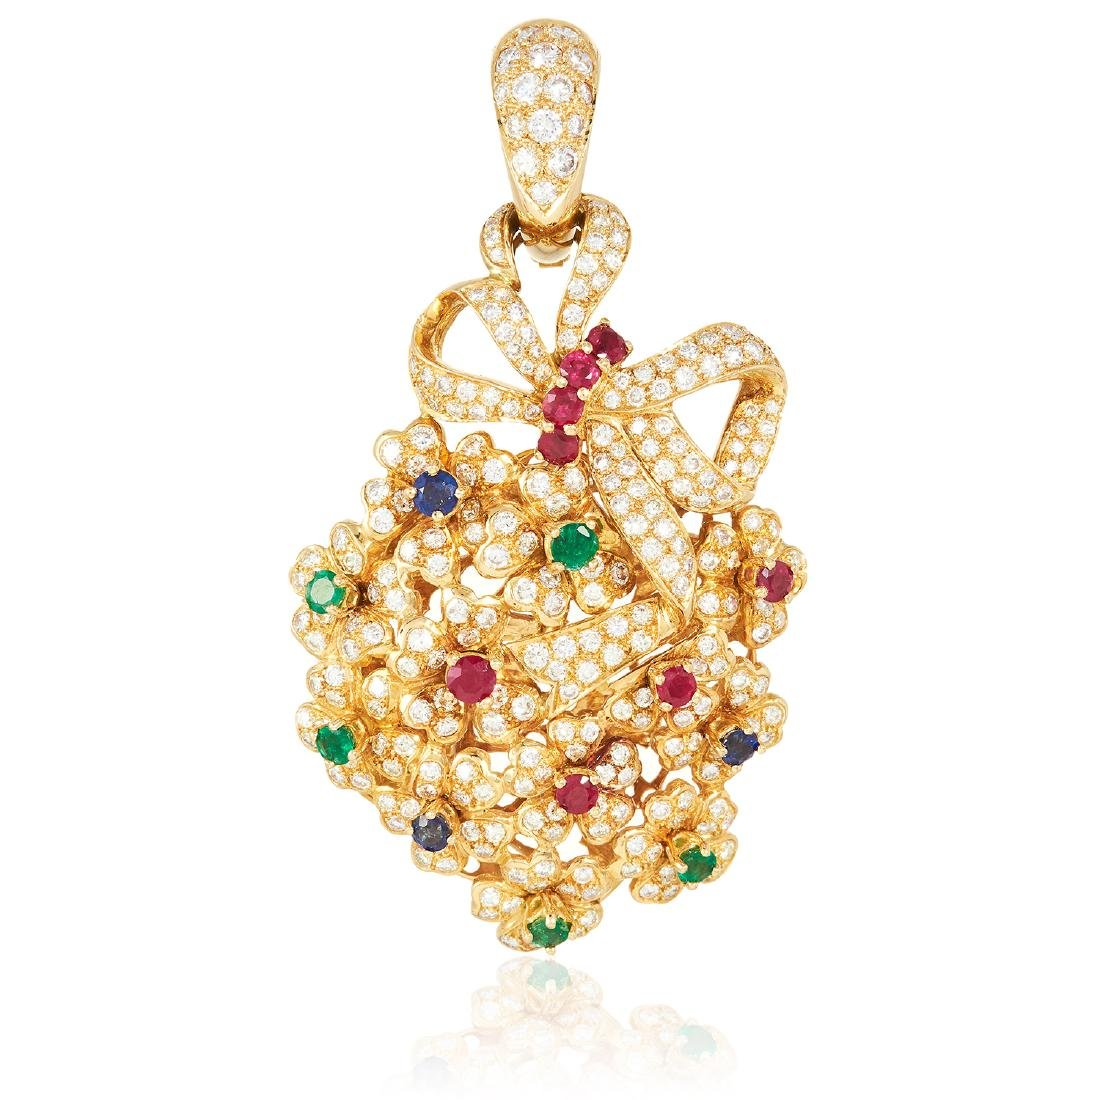 A RUBY, EMERALD, SAPPHIRE AND DIAMOND PENDANT in 18ct